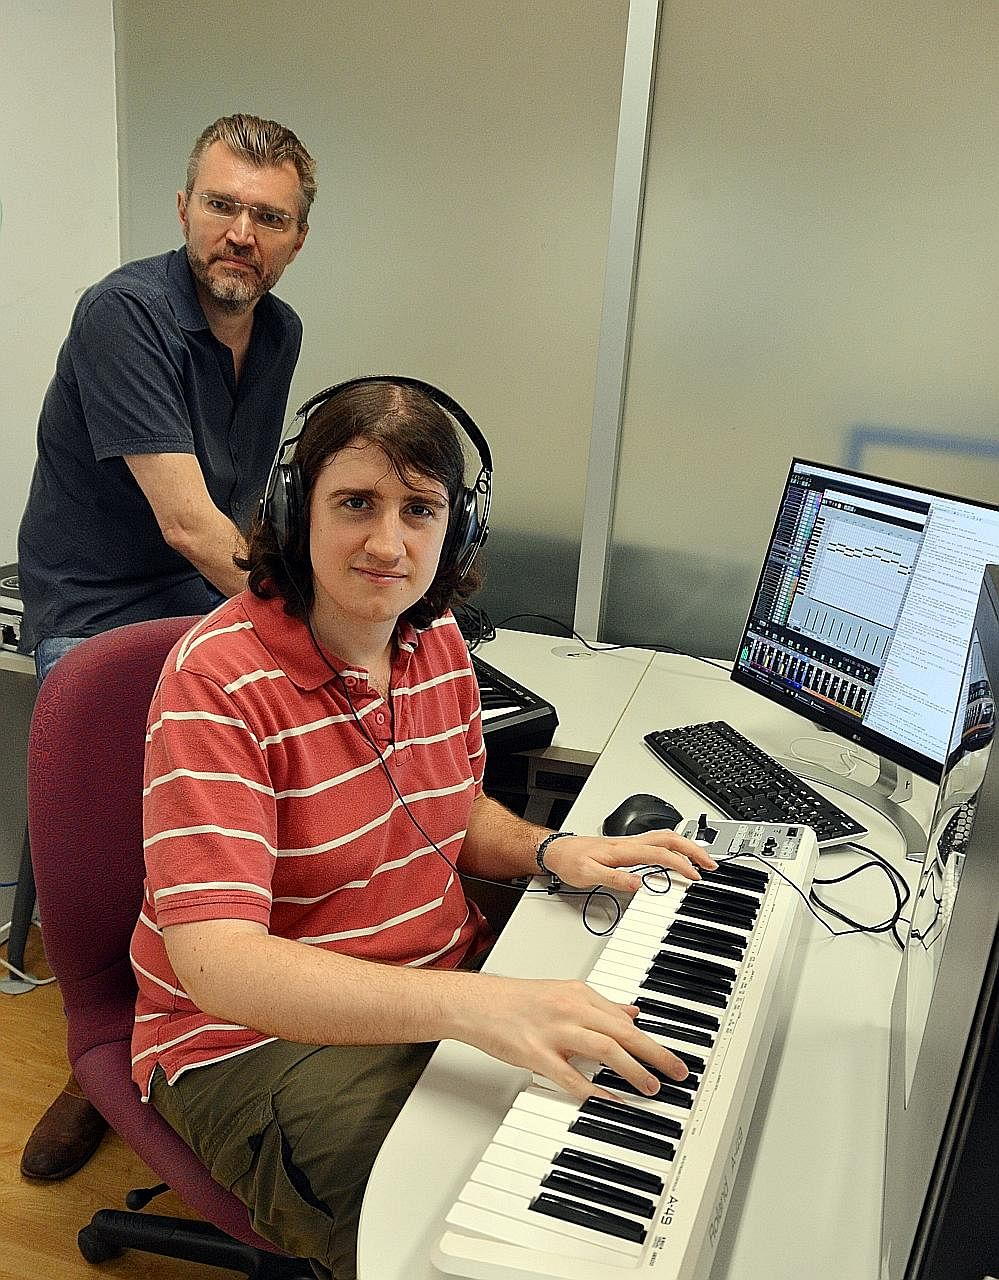 Dr Andrew Garner (in red) and Prof Vlatko Vedral at NUS' Centre for Quantum Technologies with a computer and keyboard set-up that translates quantum effects into musical sounds.